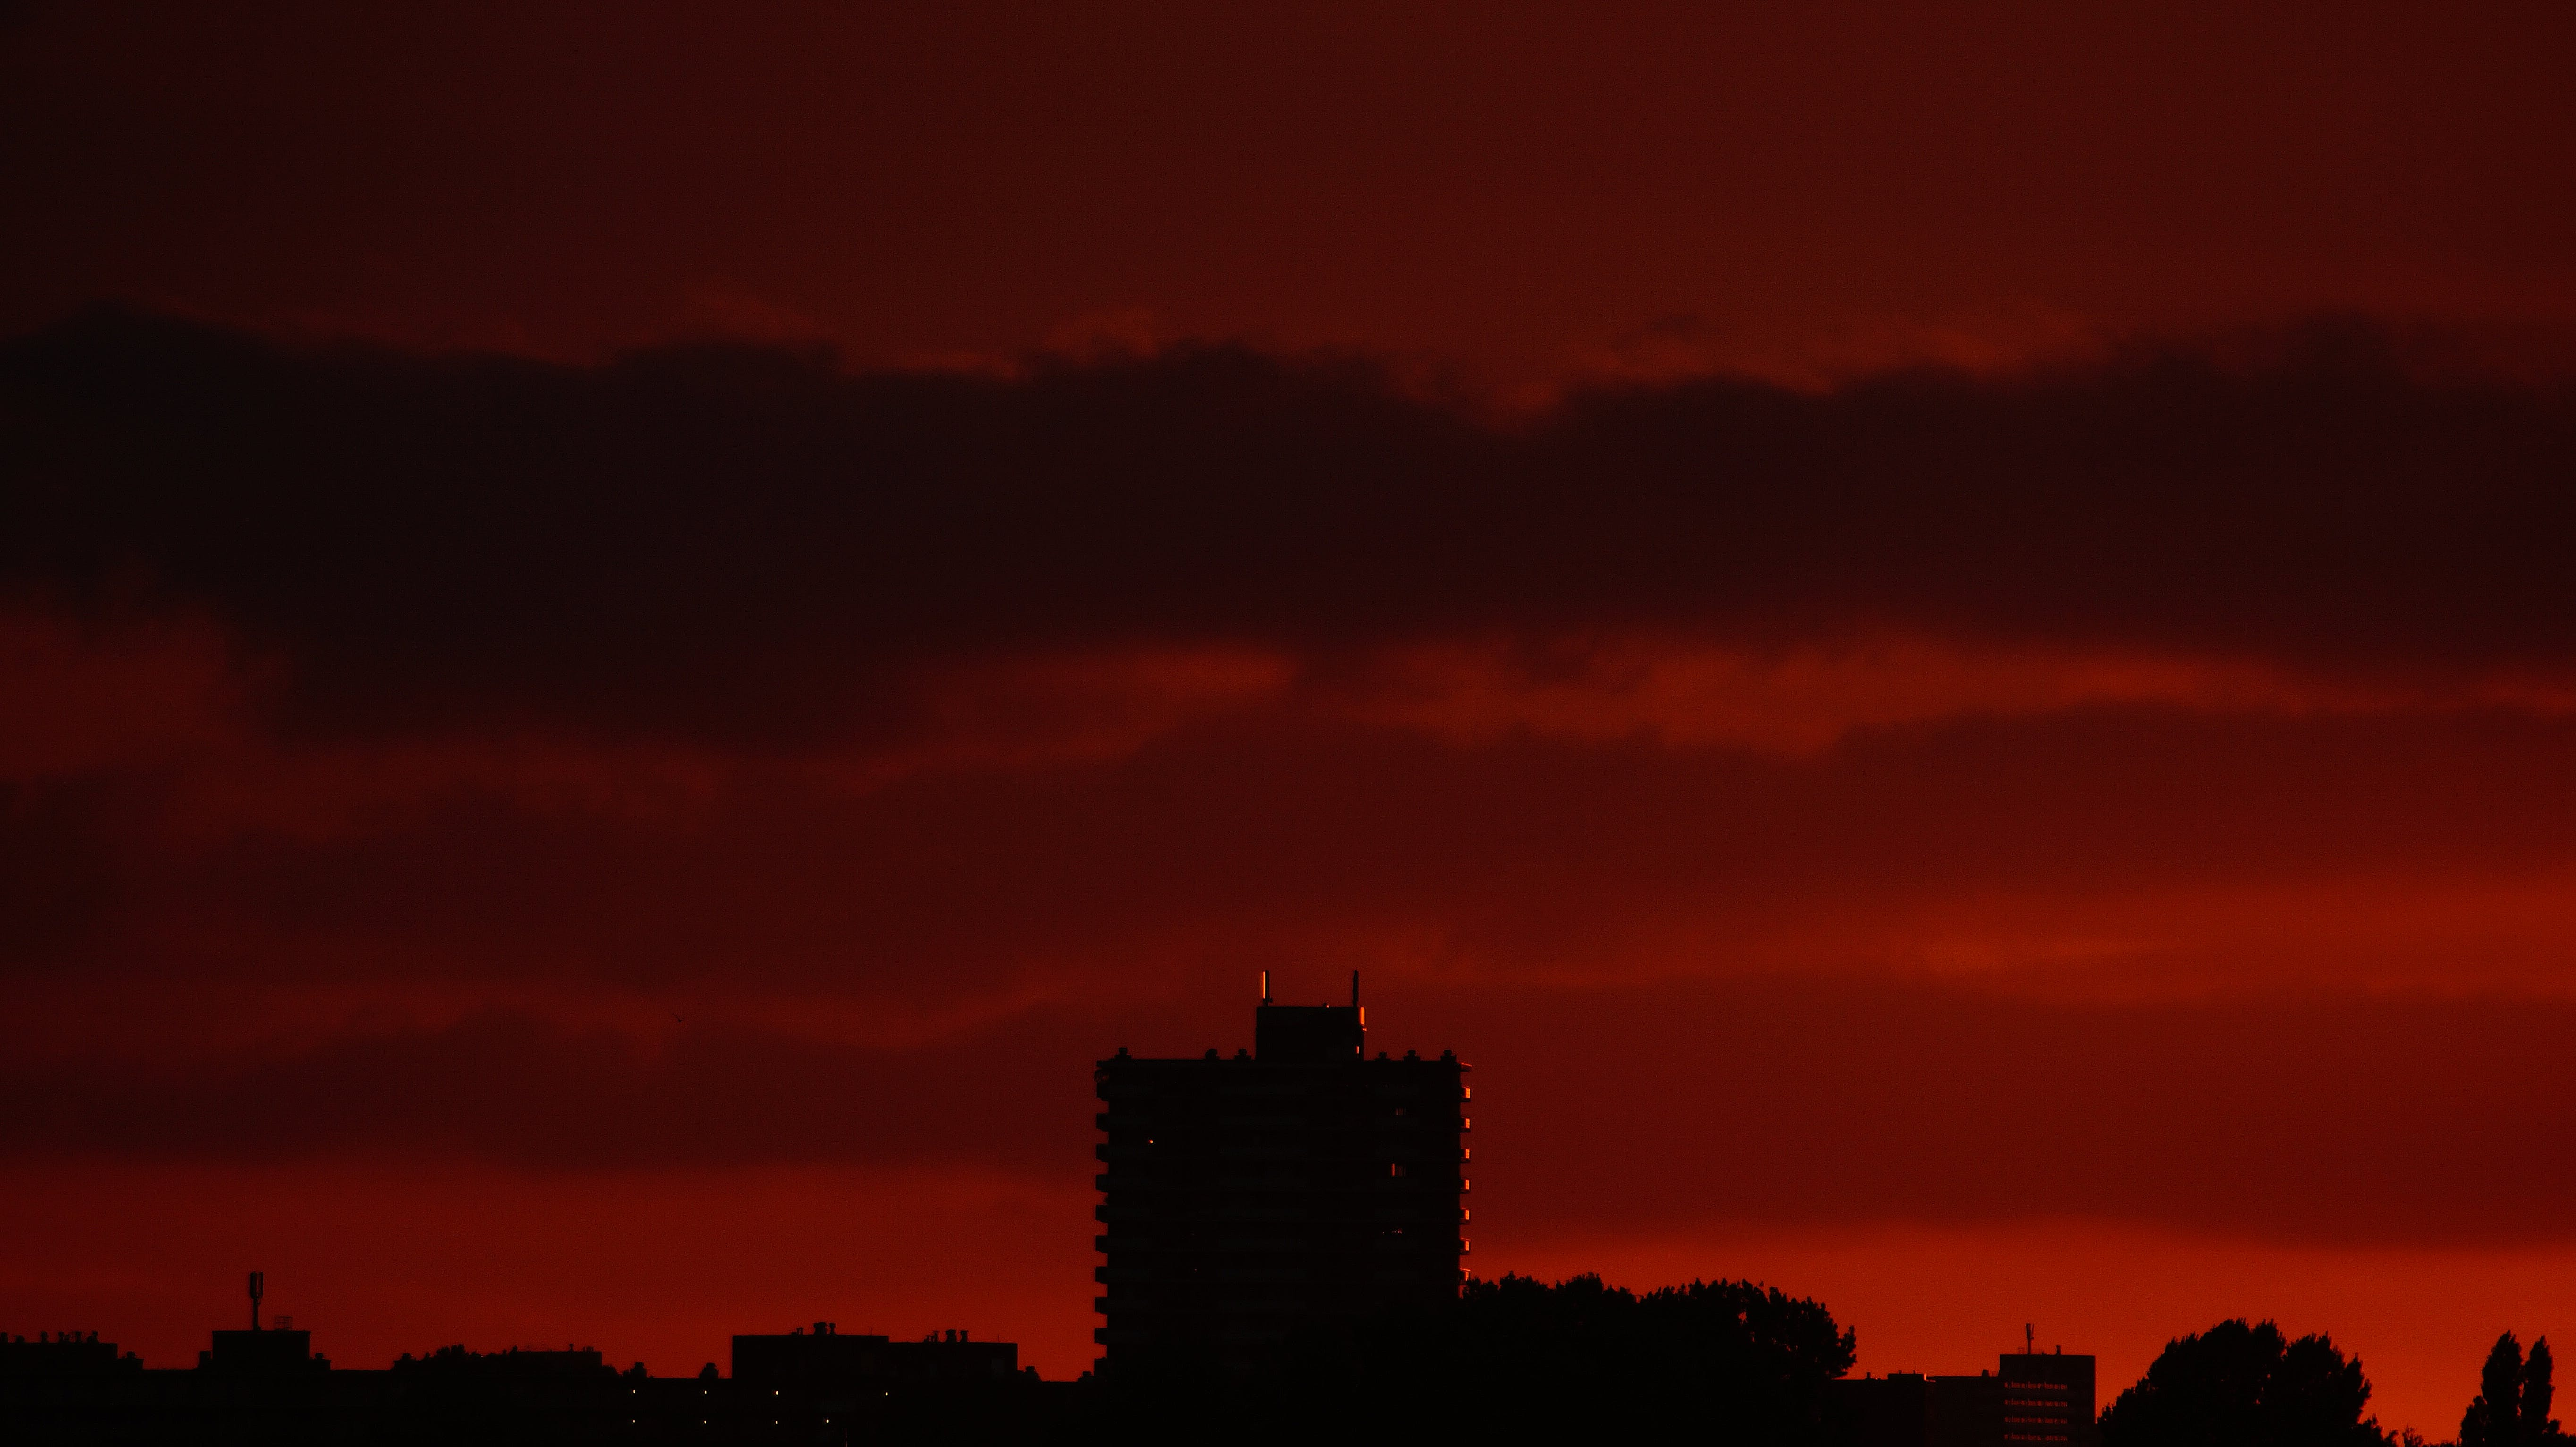 Silhouette of Building Structures Against Red Skies